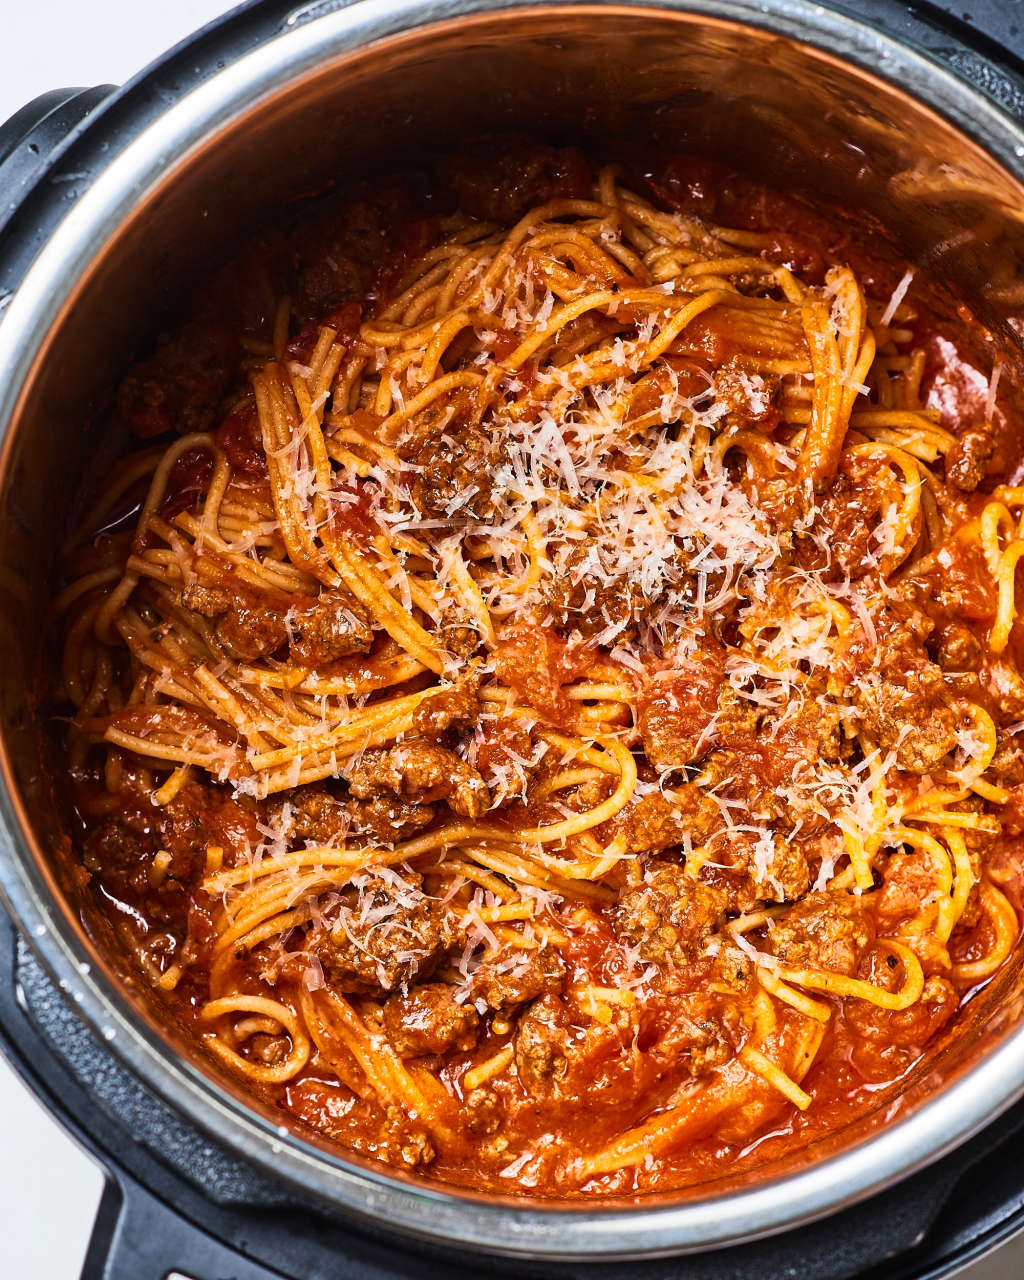 The 10 Best Instant Pot Recipes to Make Right Now